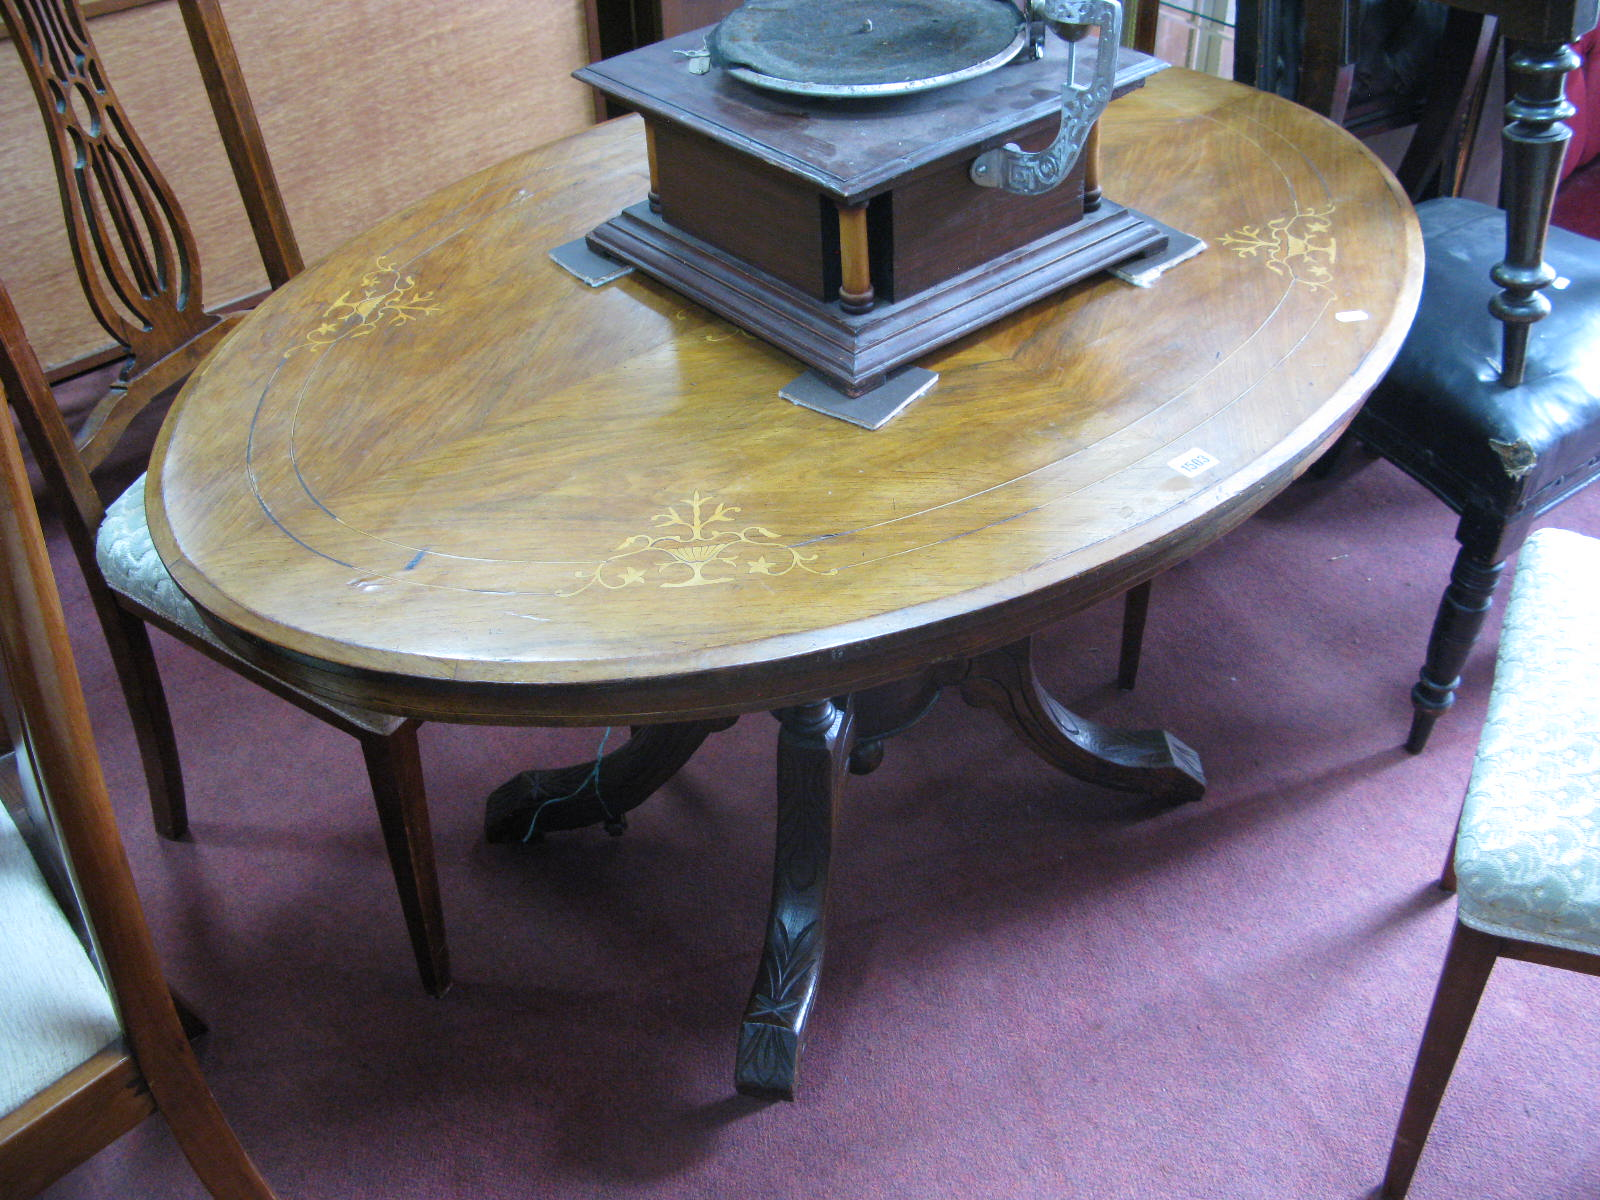 Lot 1503 - A XIX Century Walnut Loo Table, with satinwood vase inlay to oval top, on four pillar supports,